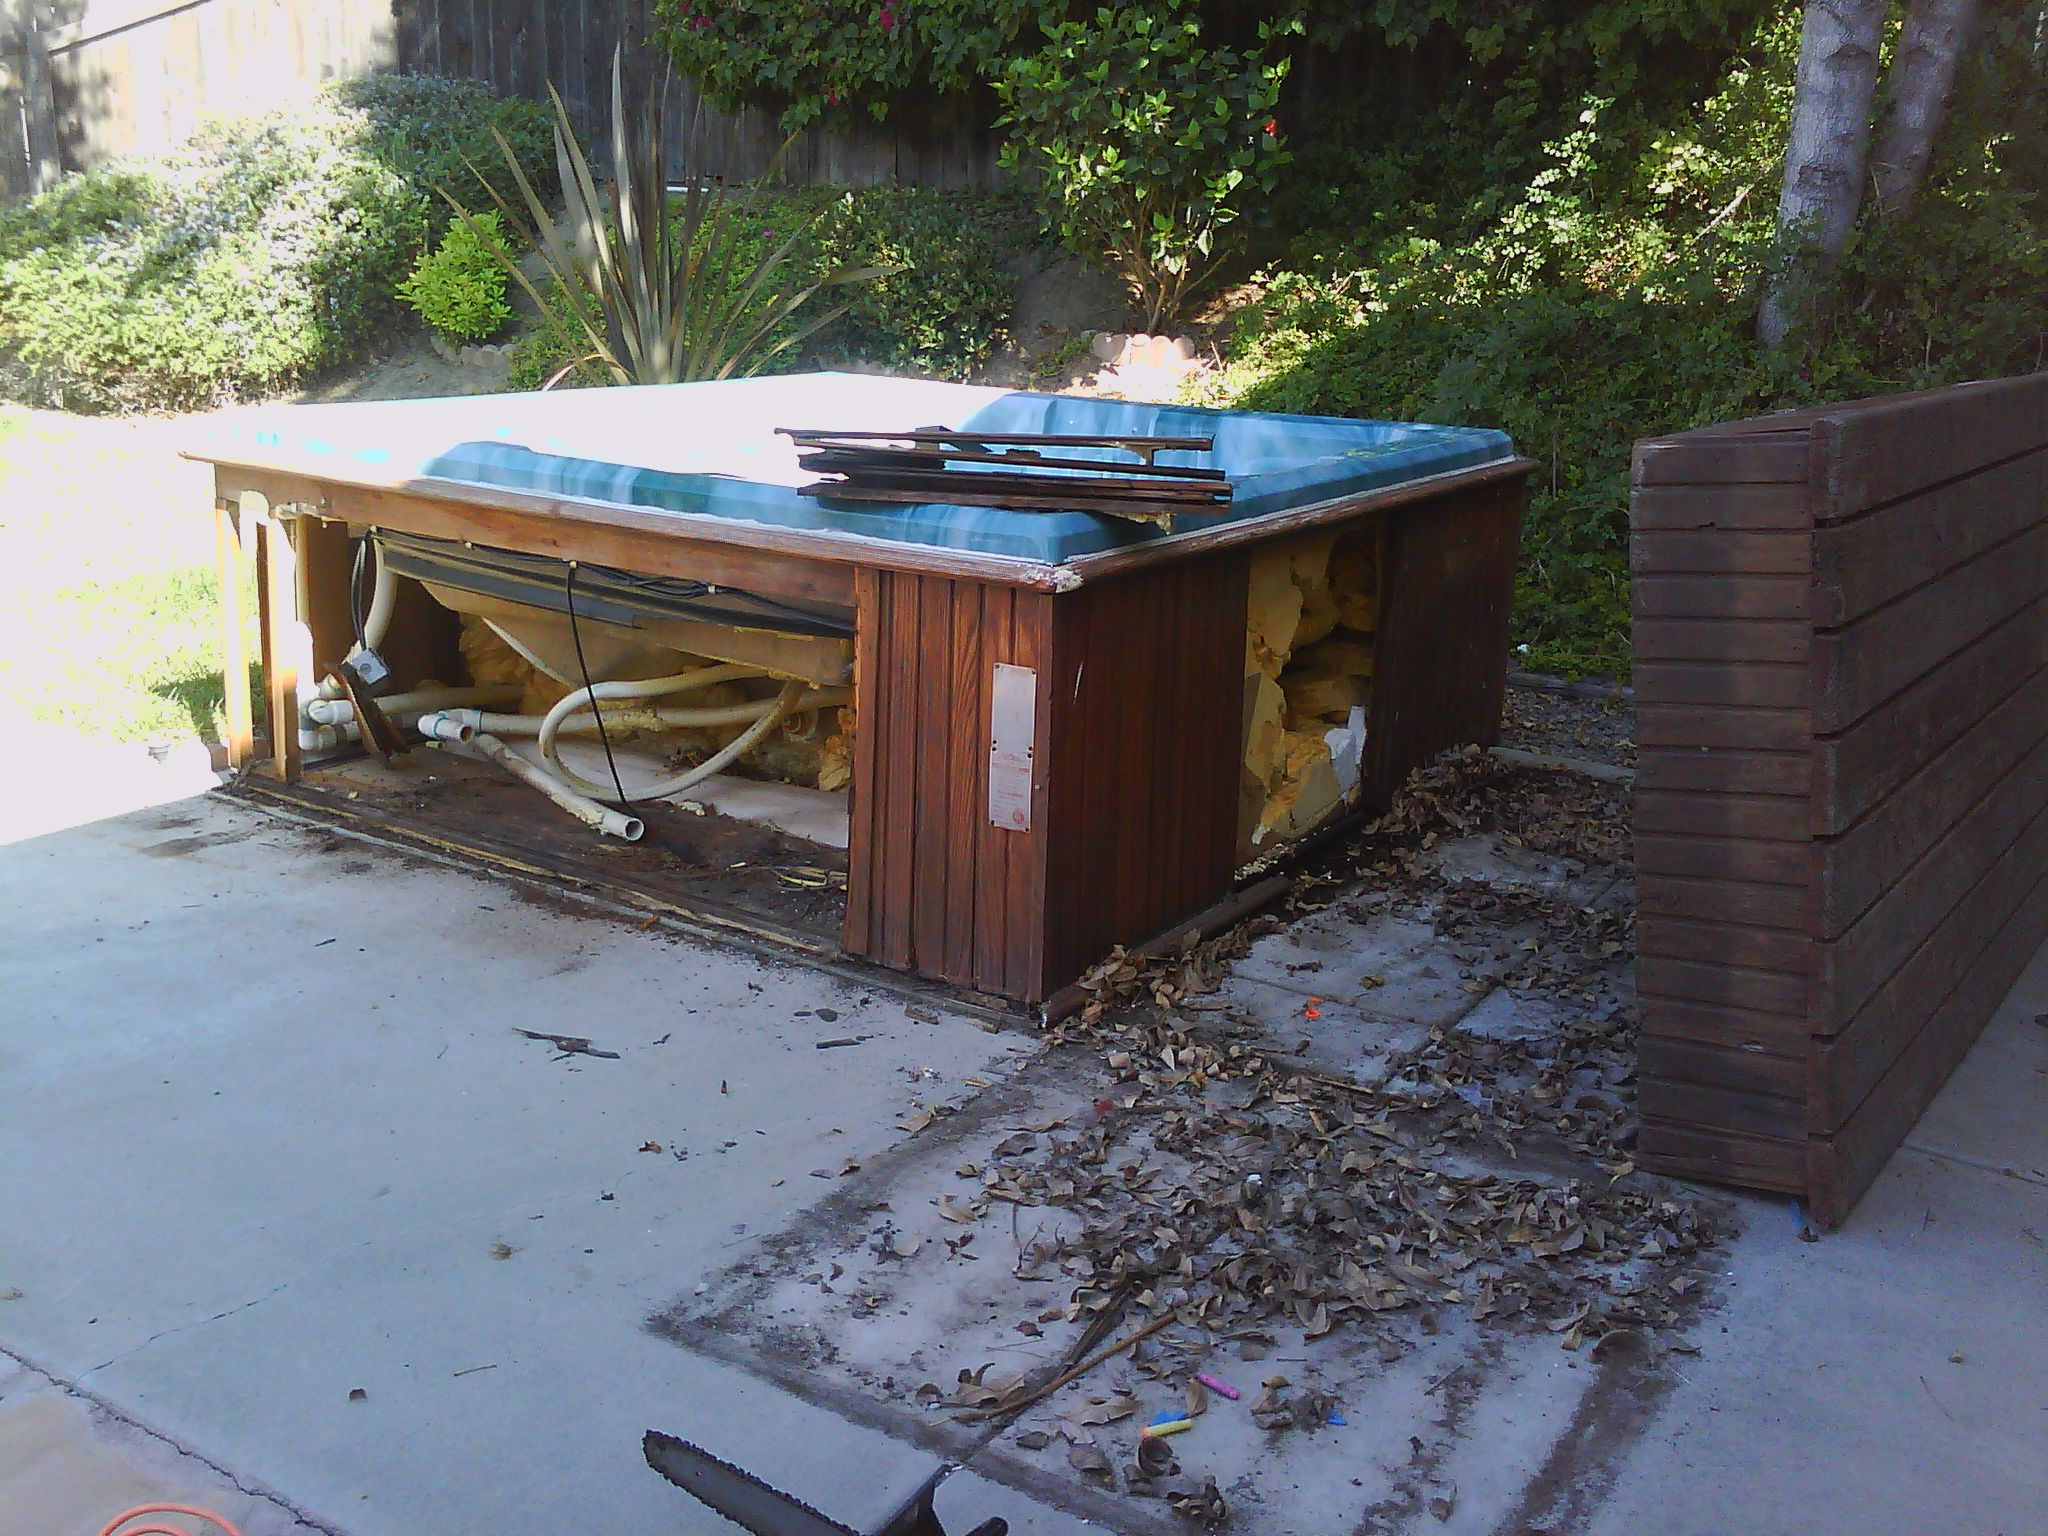 Poway Spa Removal and Poway Hot Tub Removal